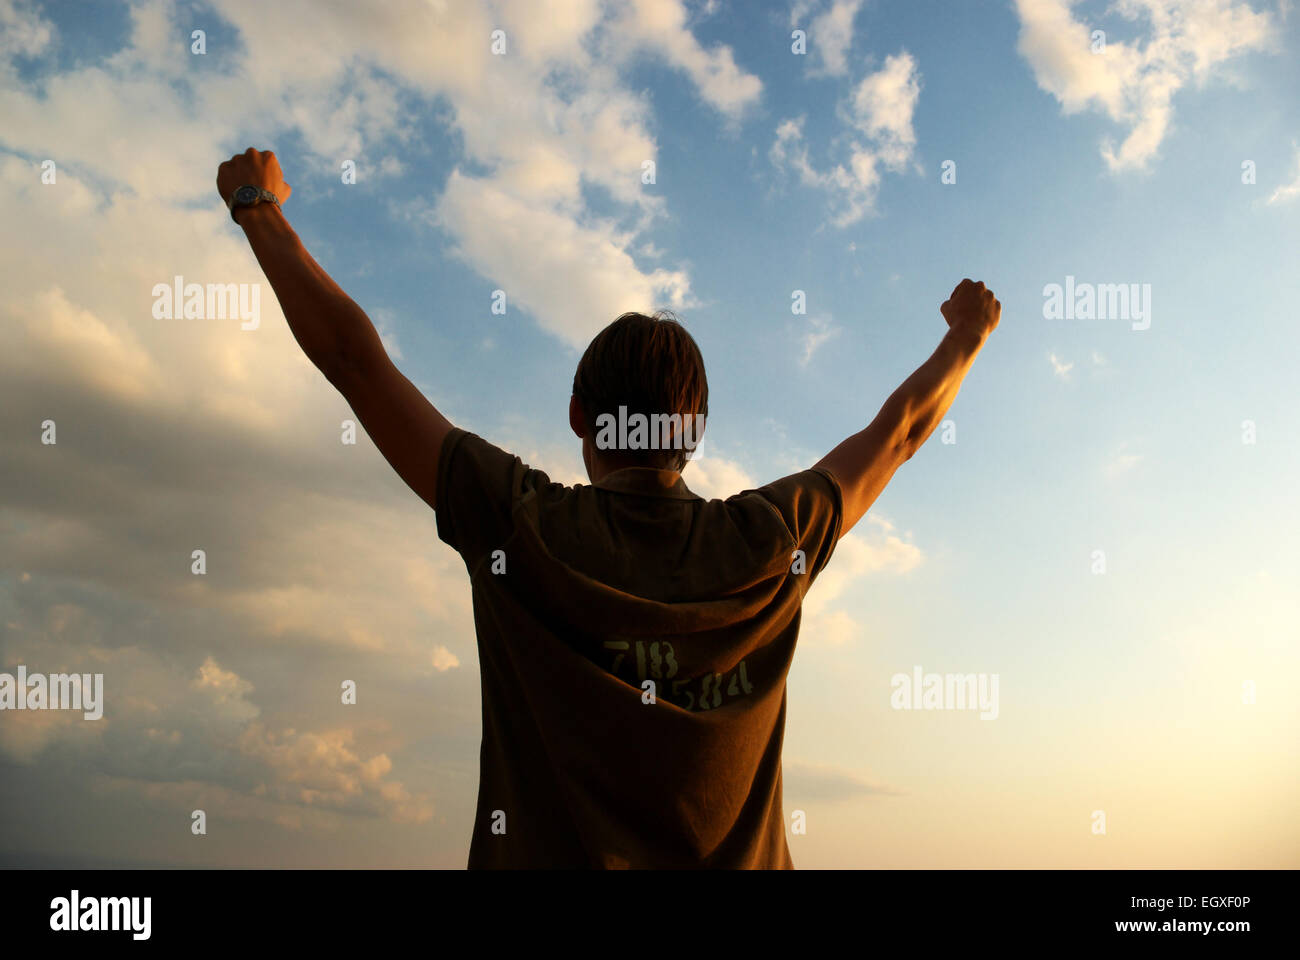 Man on the sky background. Concept design. - Stock Image